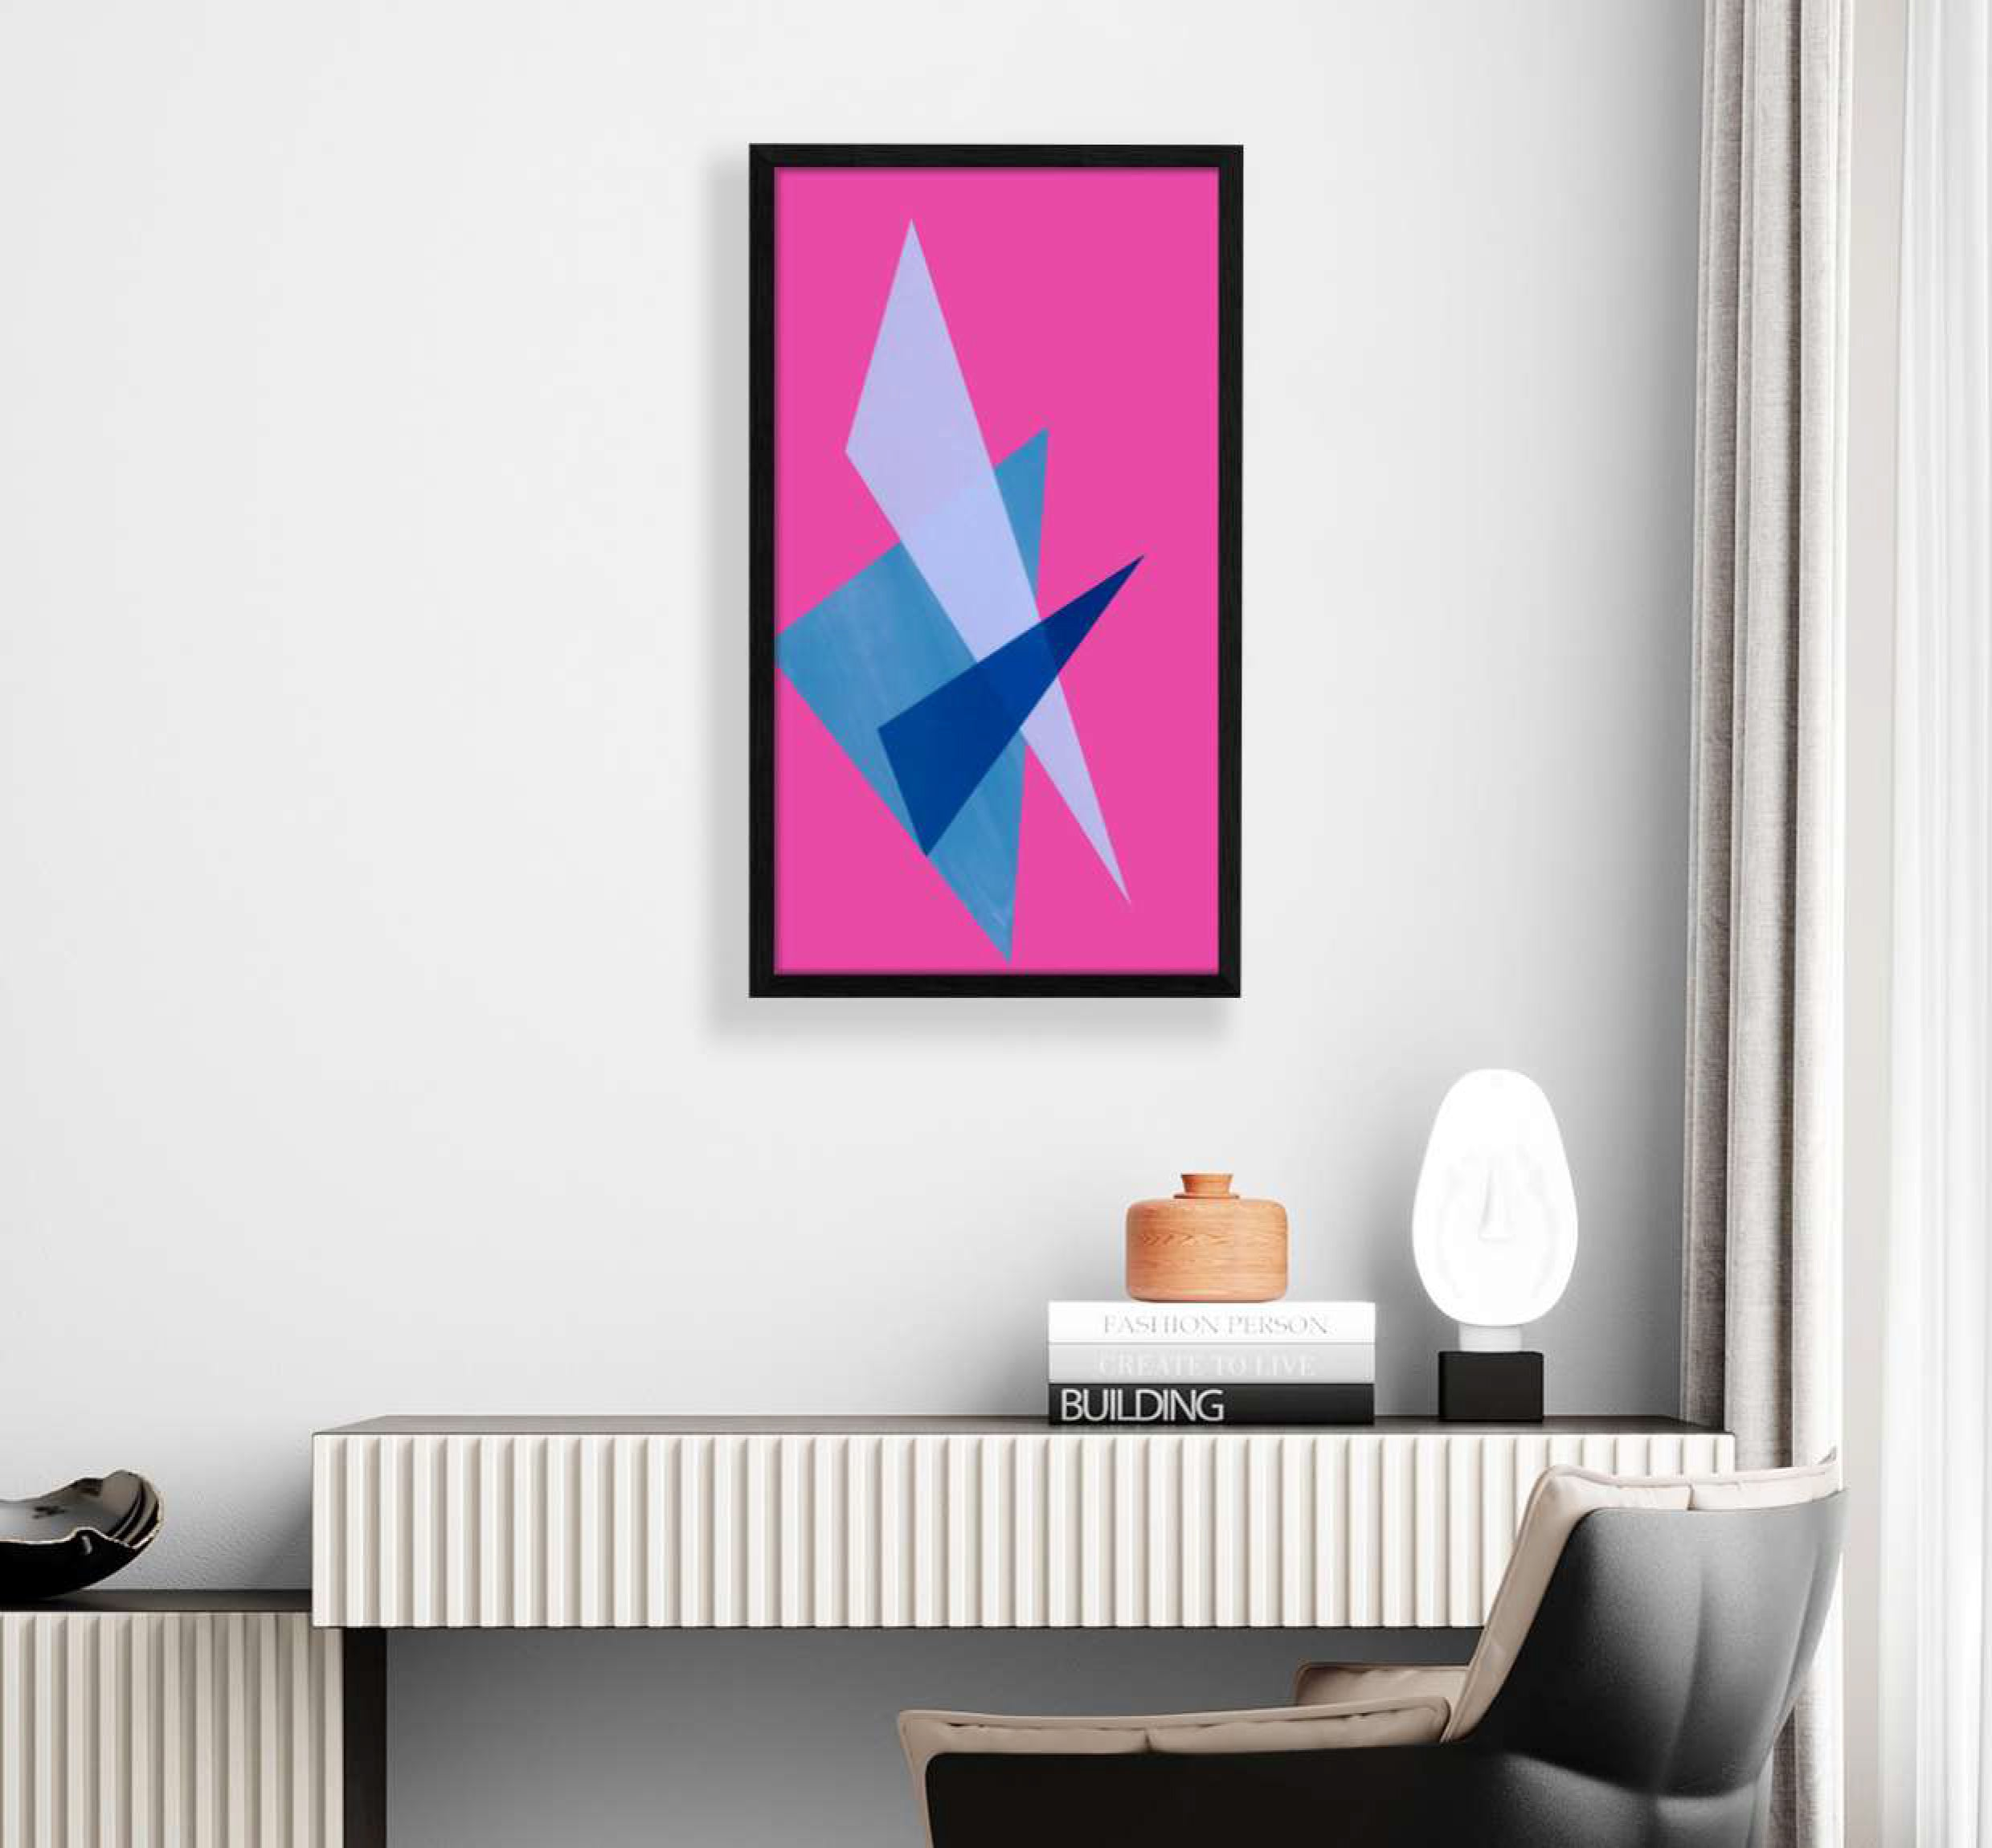 interior display of blue and pink geometric shaped print